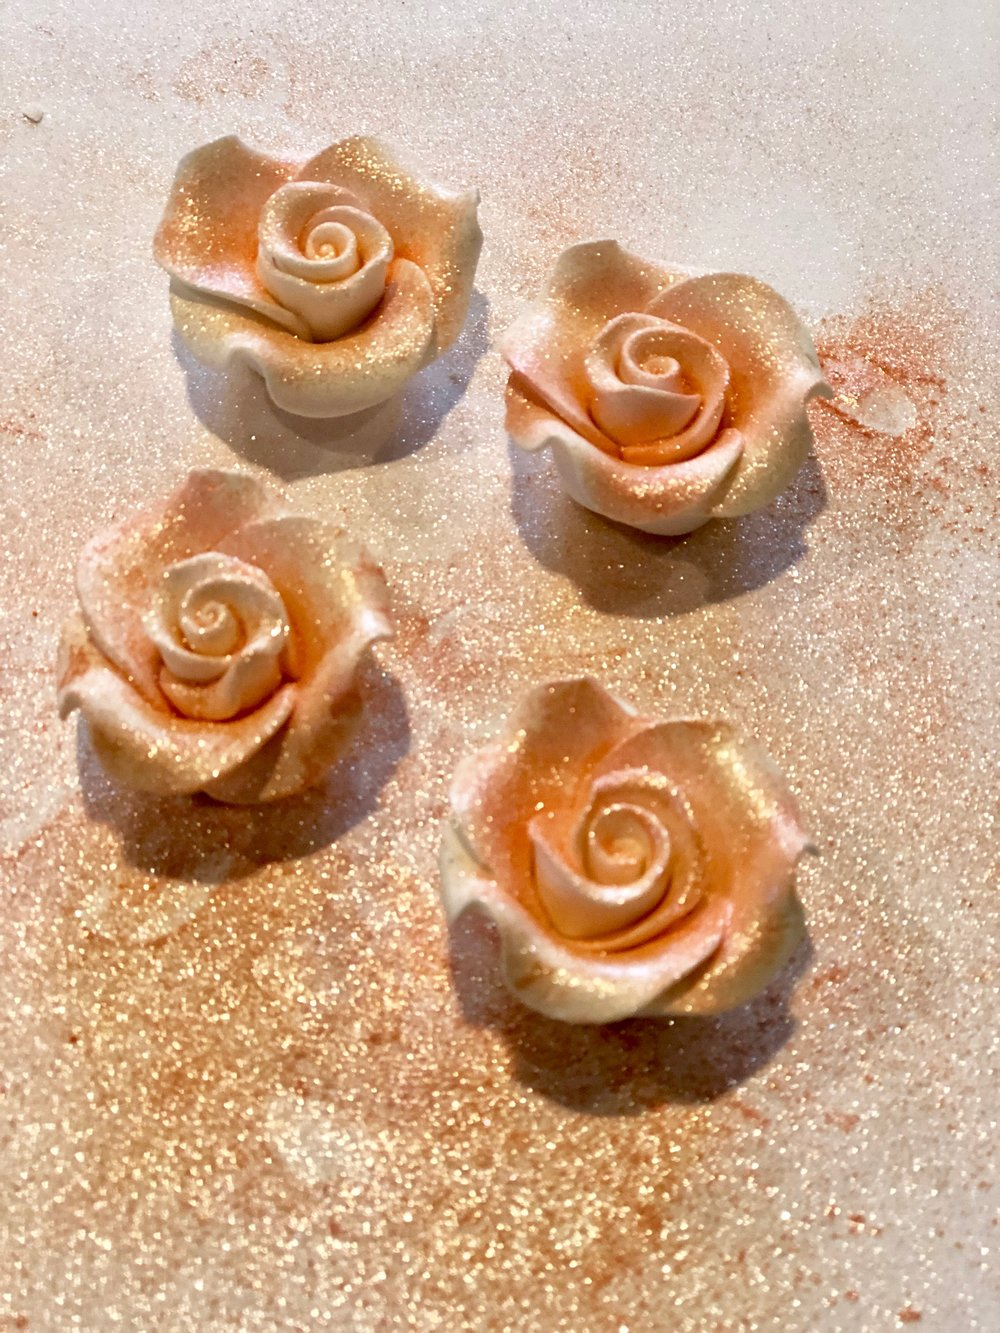 wilton rose gold dust on icing flowers.jpg